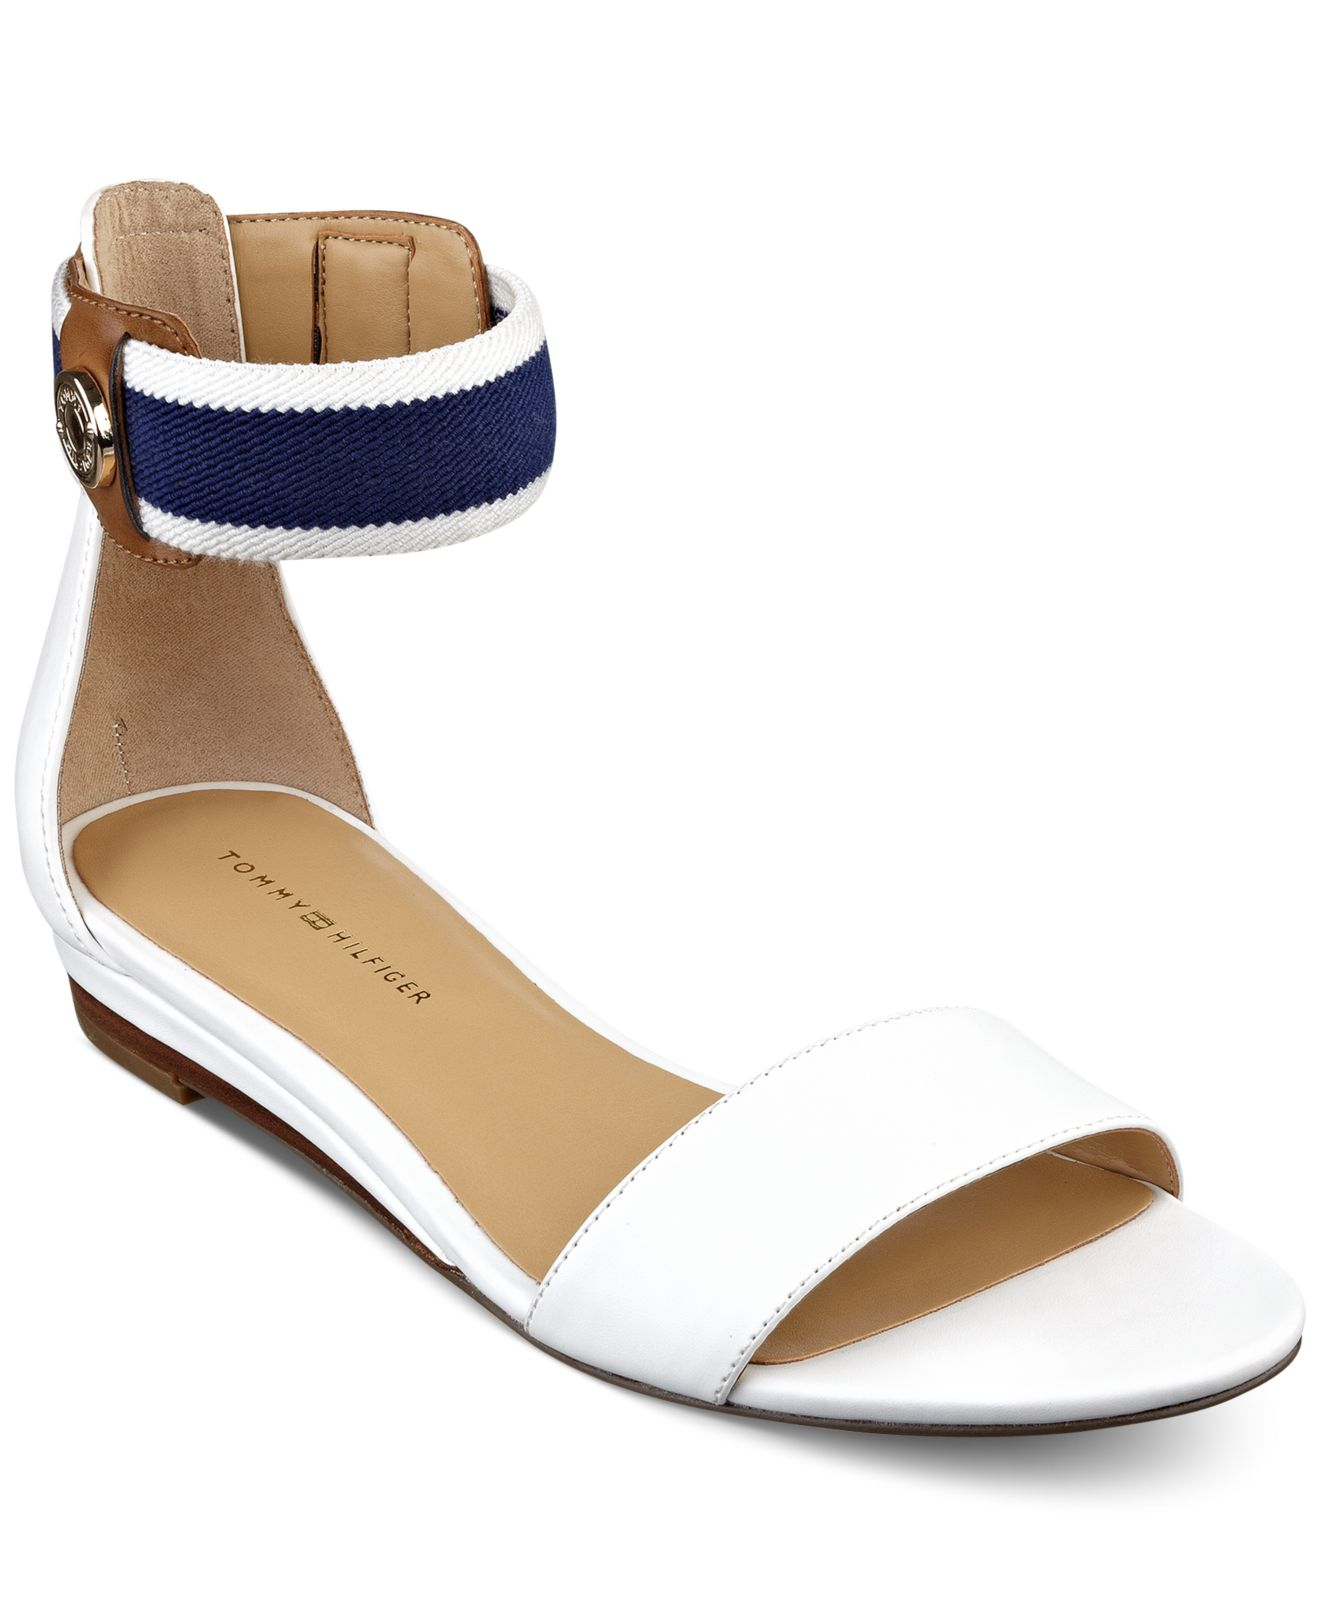 9d4556a5bd65 Lyst - Tommy Hilfiger Womens Paisley Wedge Sandals in White